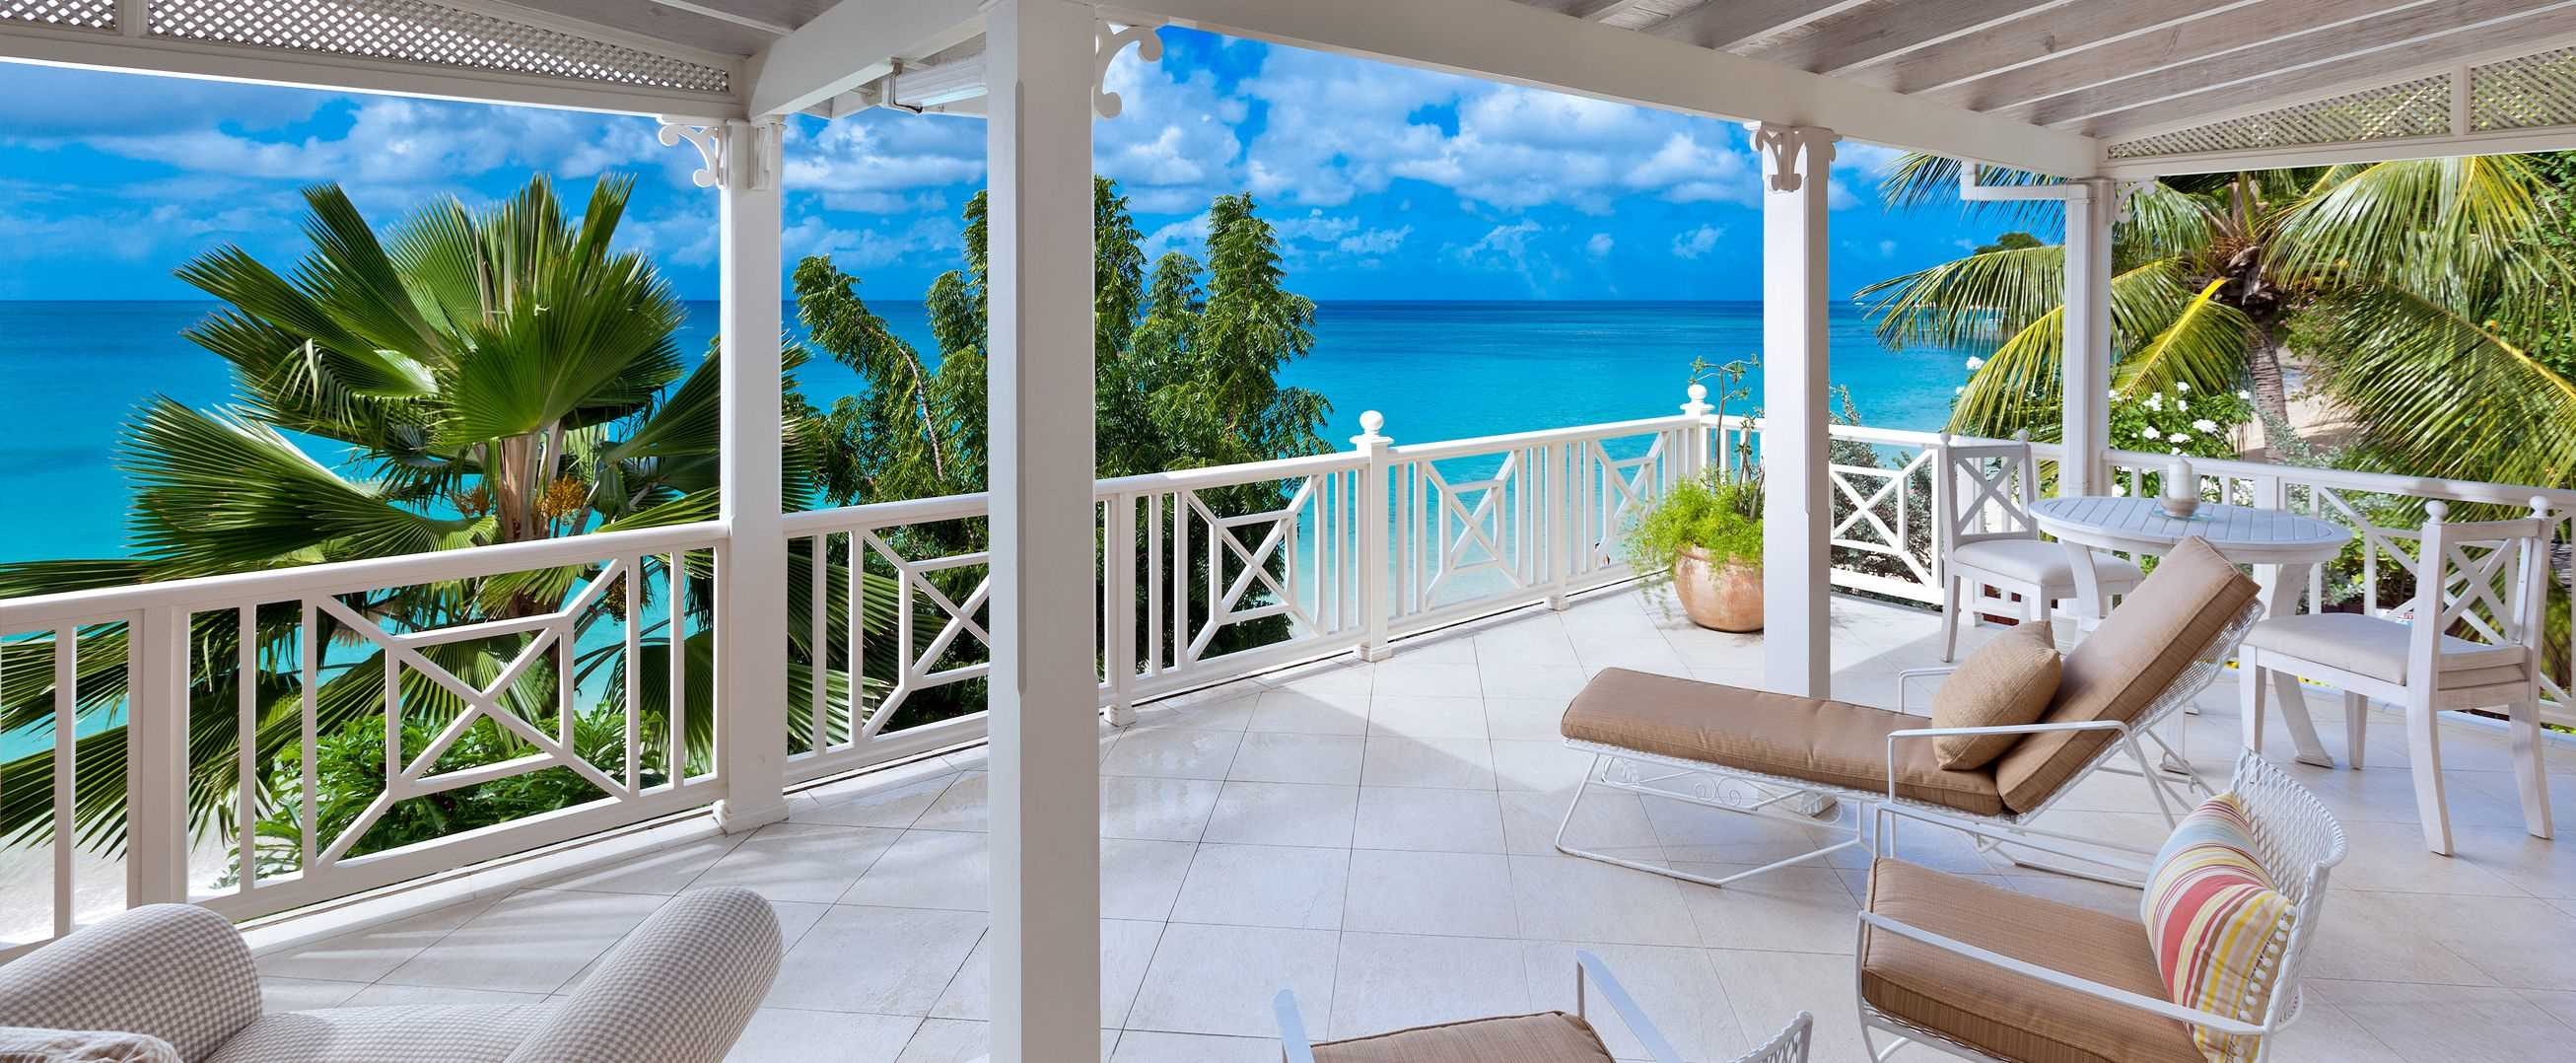 Luxury Barbados villa with sea view